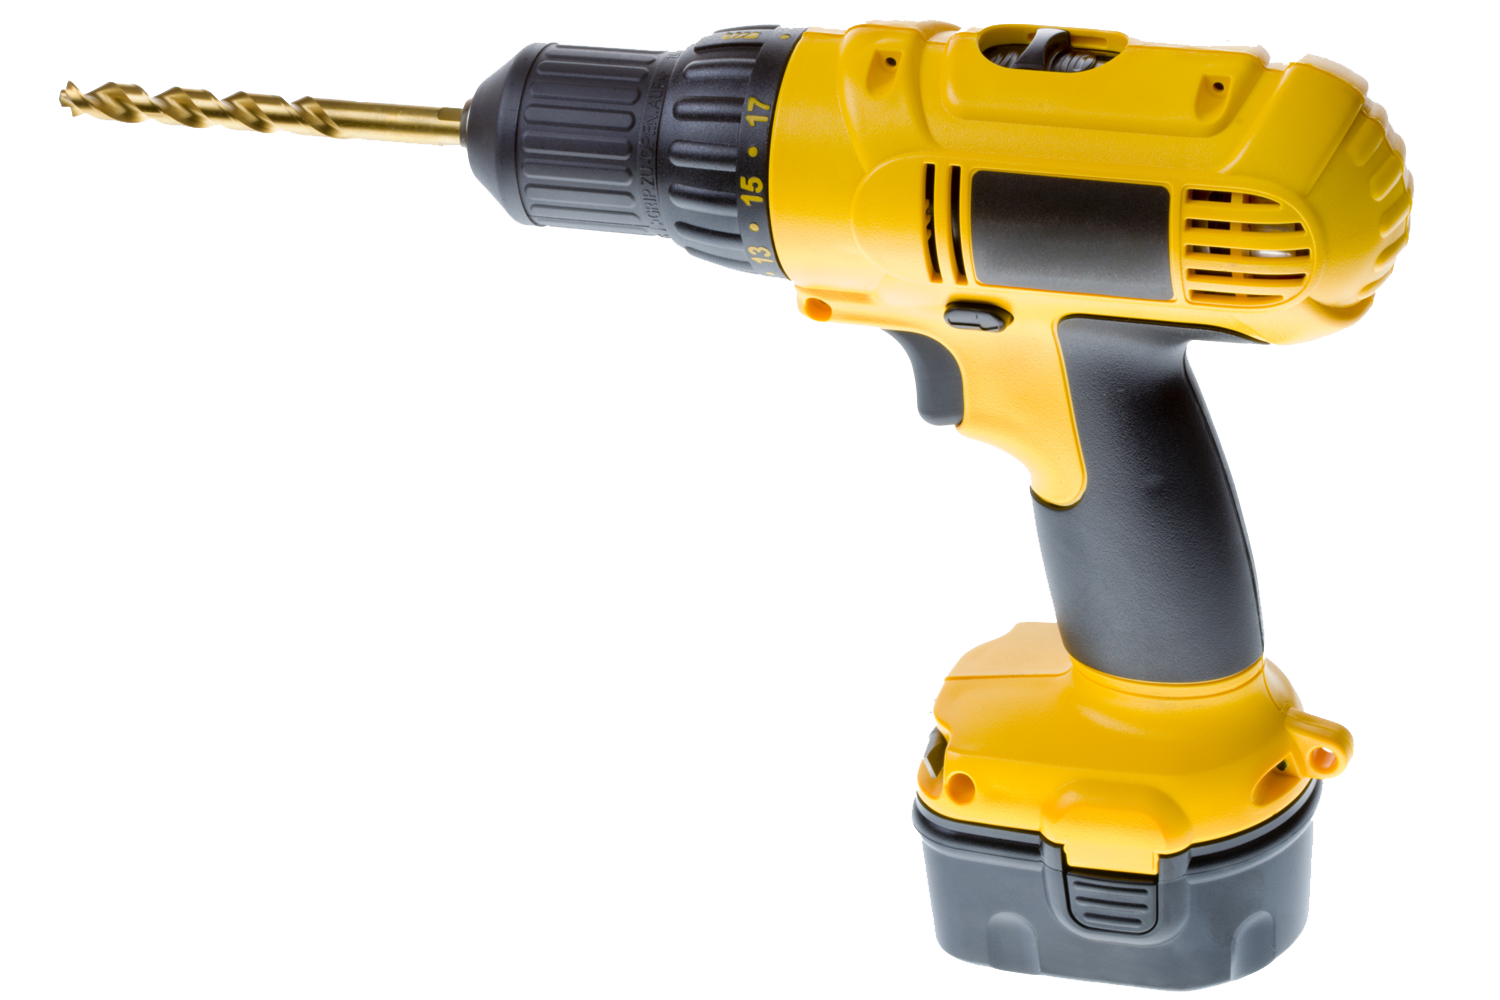 Cordless Drill/Driver vs Impact Driver: Which Do You Need?